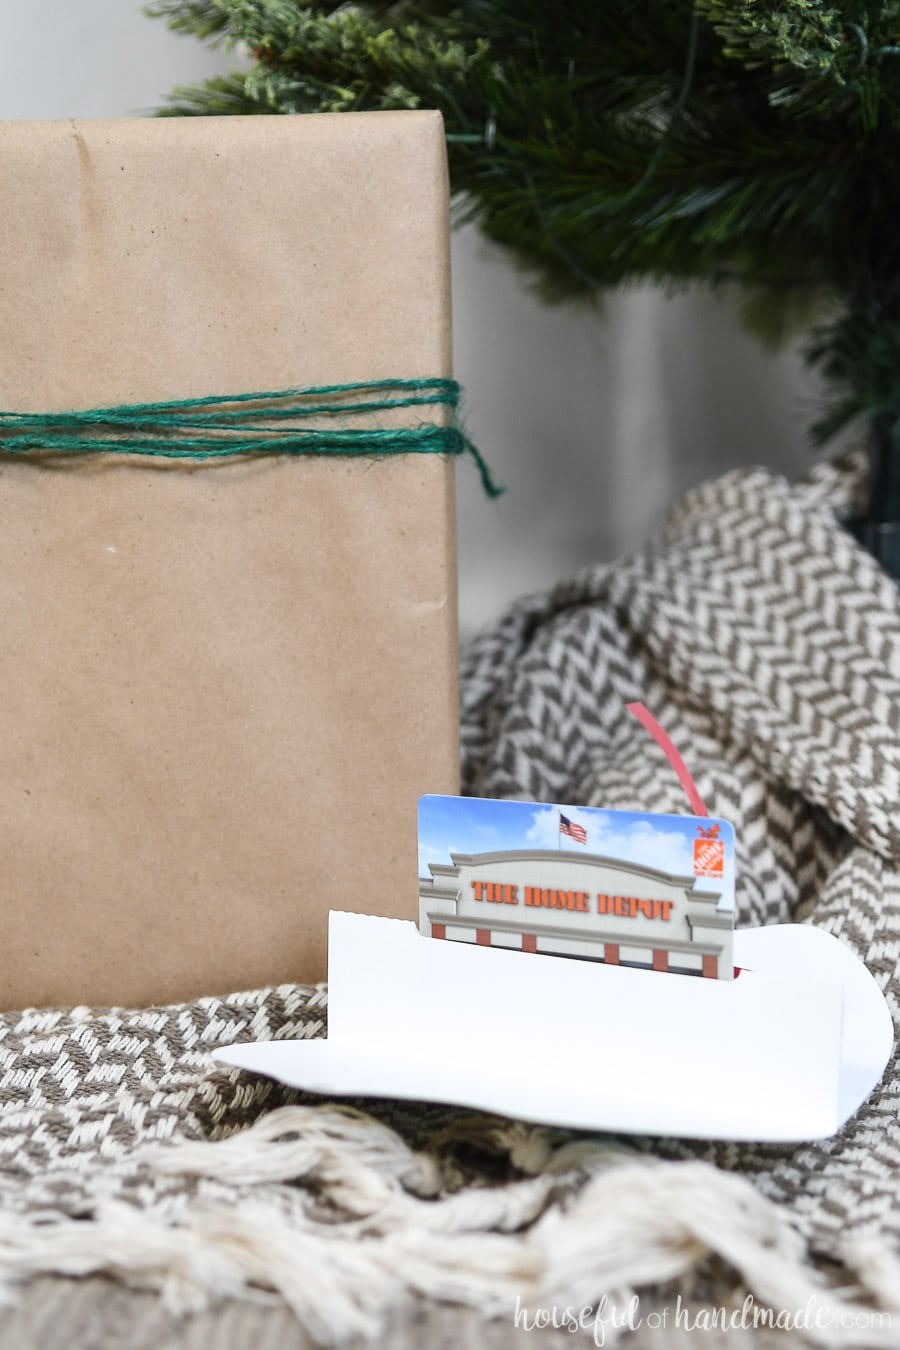 Printable Christmas gift card holder opened up to reveal the pop-up gift card inside.